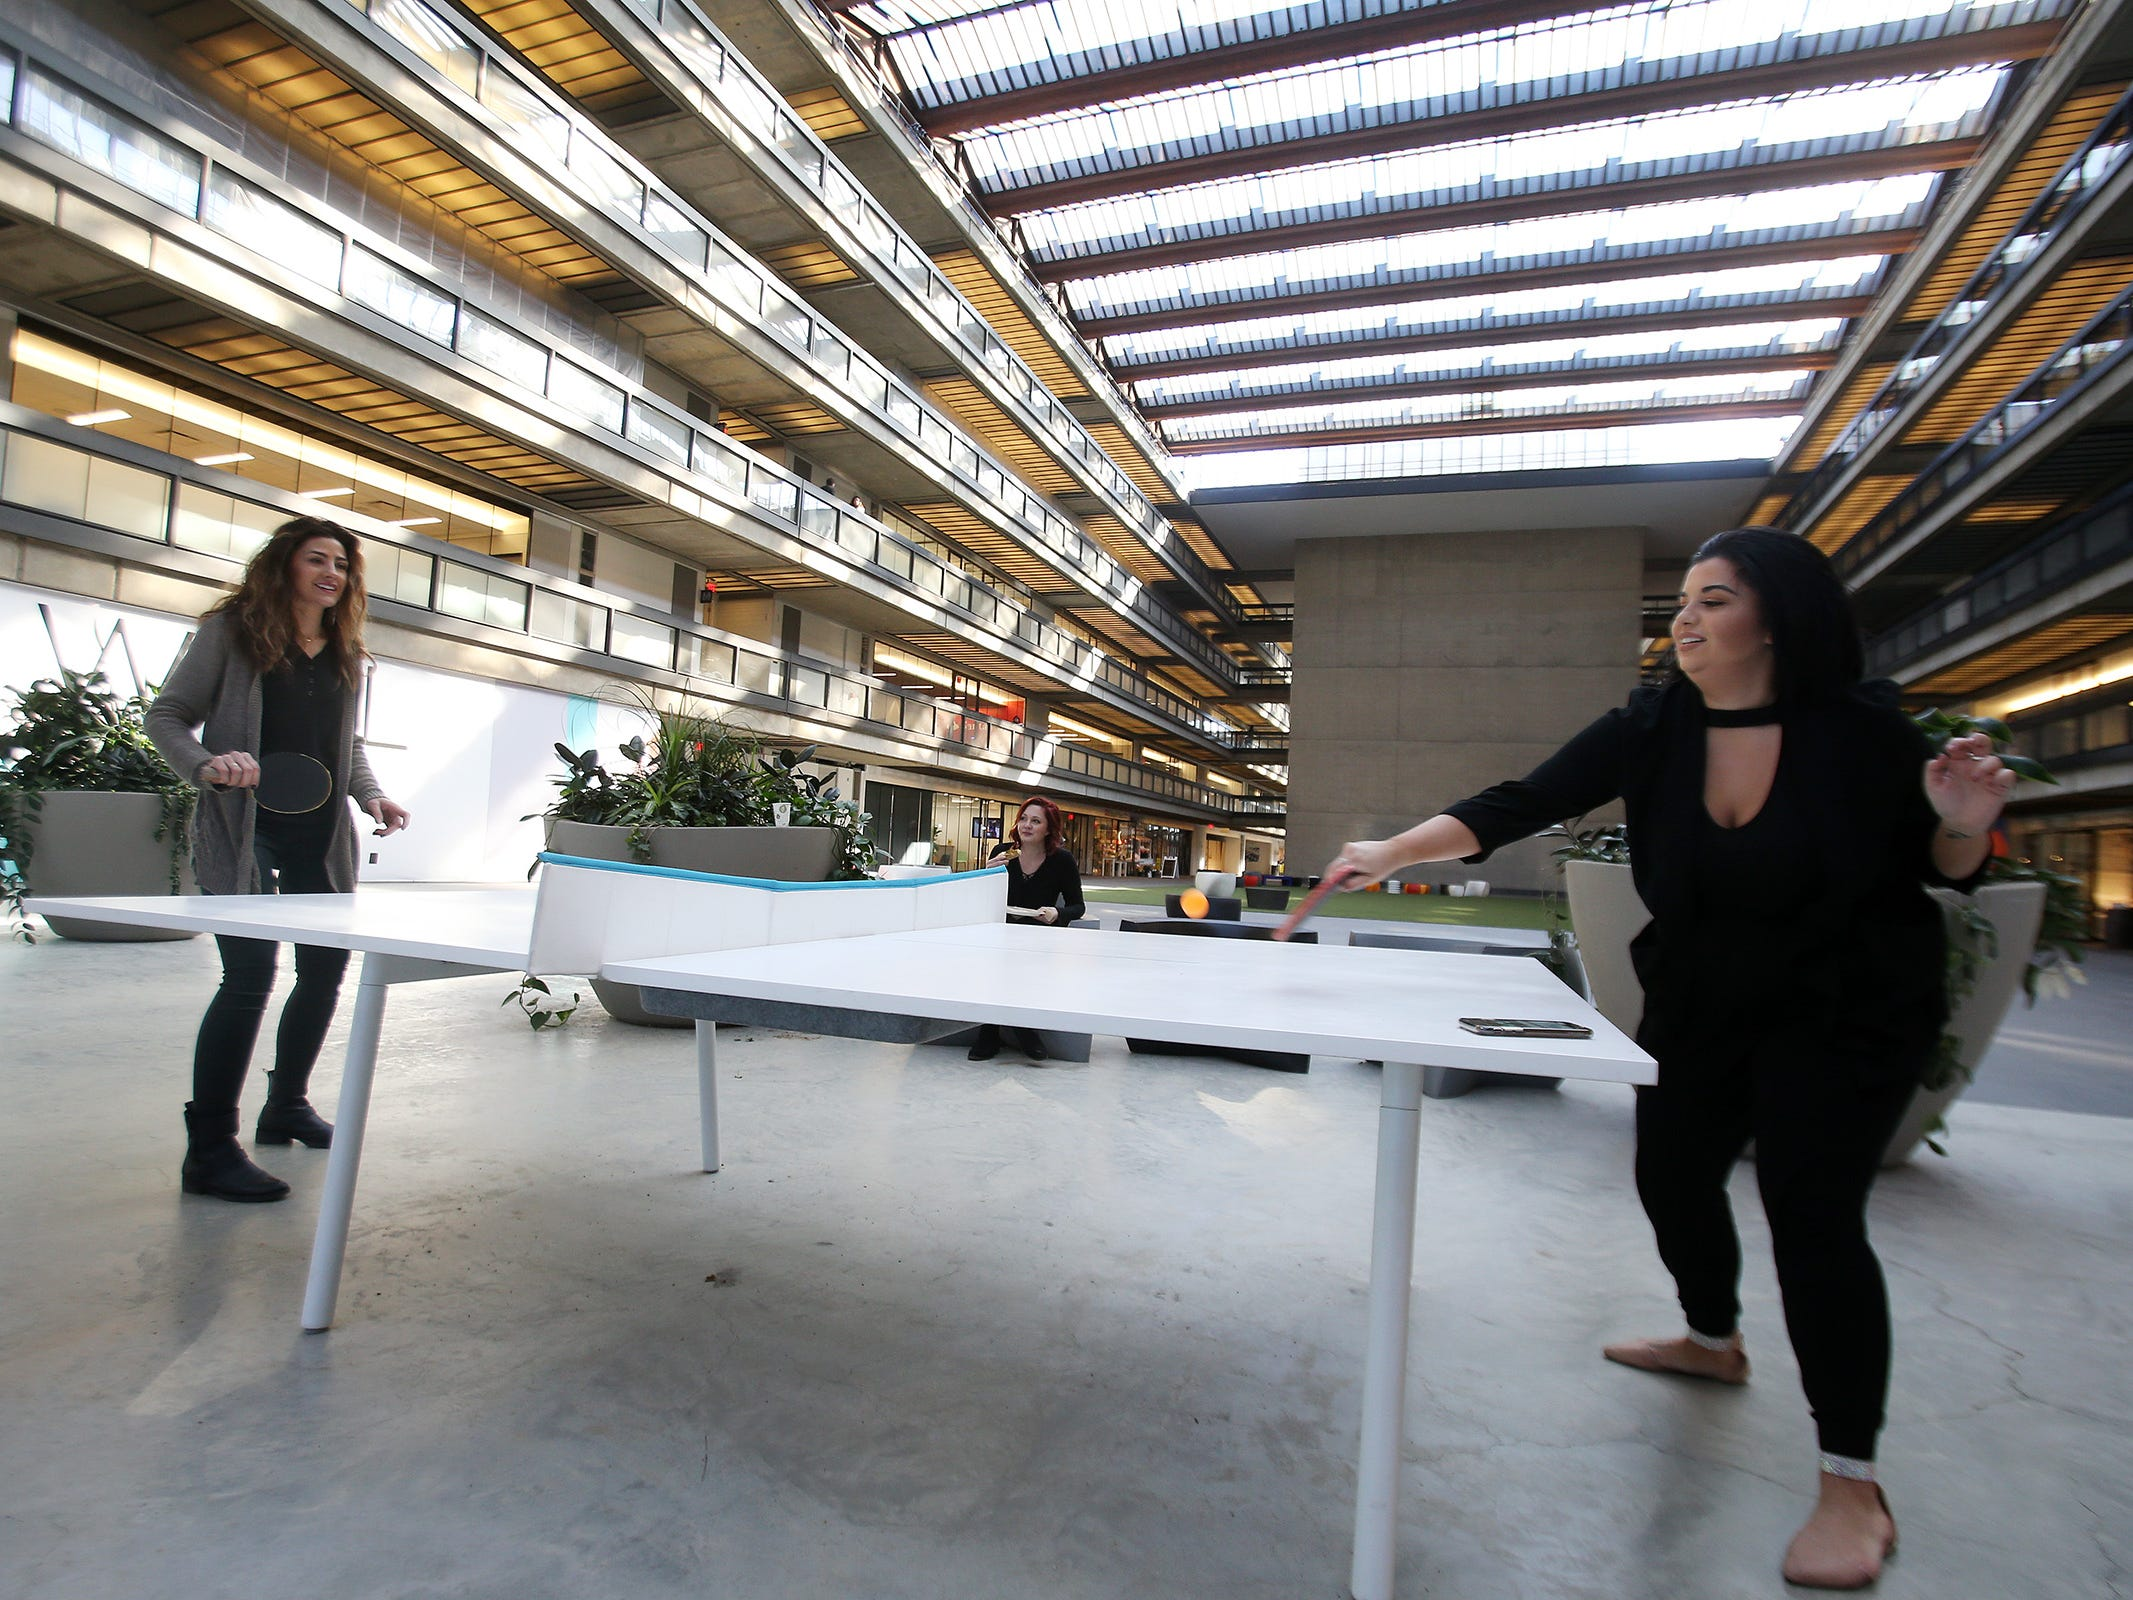 Nancy Araujo of East Brunswick and Daniella Tallarico of Brick, both work at Salon Concrete, play ping pong together at Bell Works in Holmdel, NJ Thursday January 31, 2019. Bell Works versus Fort Monmouth. Who's winning? The Shore's two biggest redevelopment projects got underway at about the same time, but Bell Works has pulled far ahead in the race.